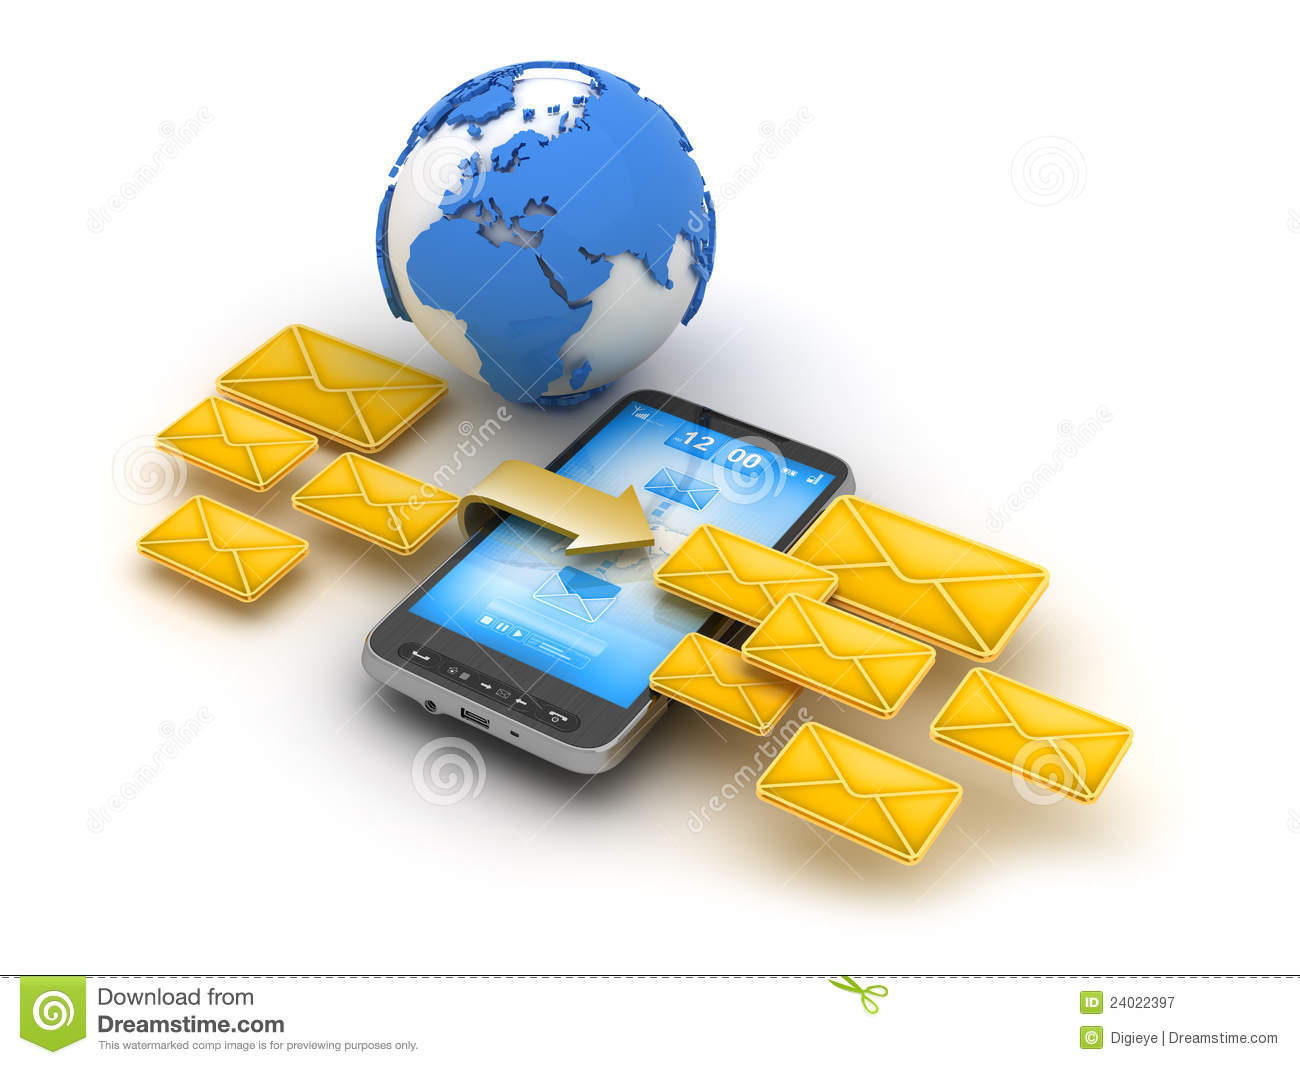 short message service sms what how Full answer sms is a text-messaging service application for phone, web or mobile communication systems this feature is supported by a standardized communications protocol to enable mobile phones and other devices to transmit short text messages.